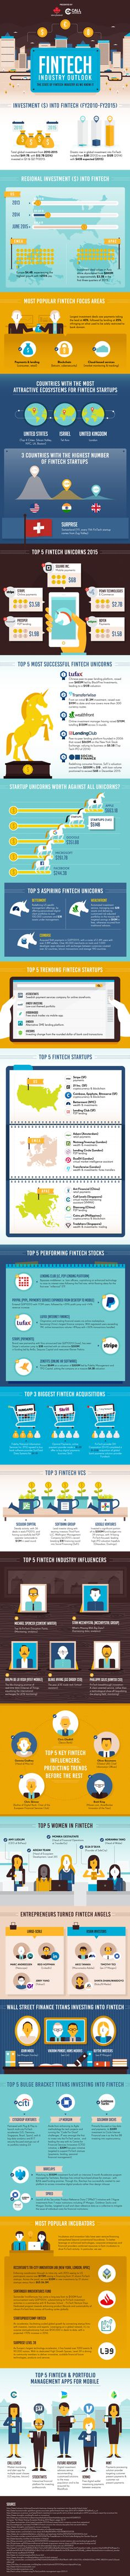 The State of FinTech industry as We Know It #infographic #Business #Startup